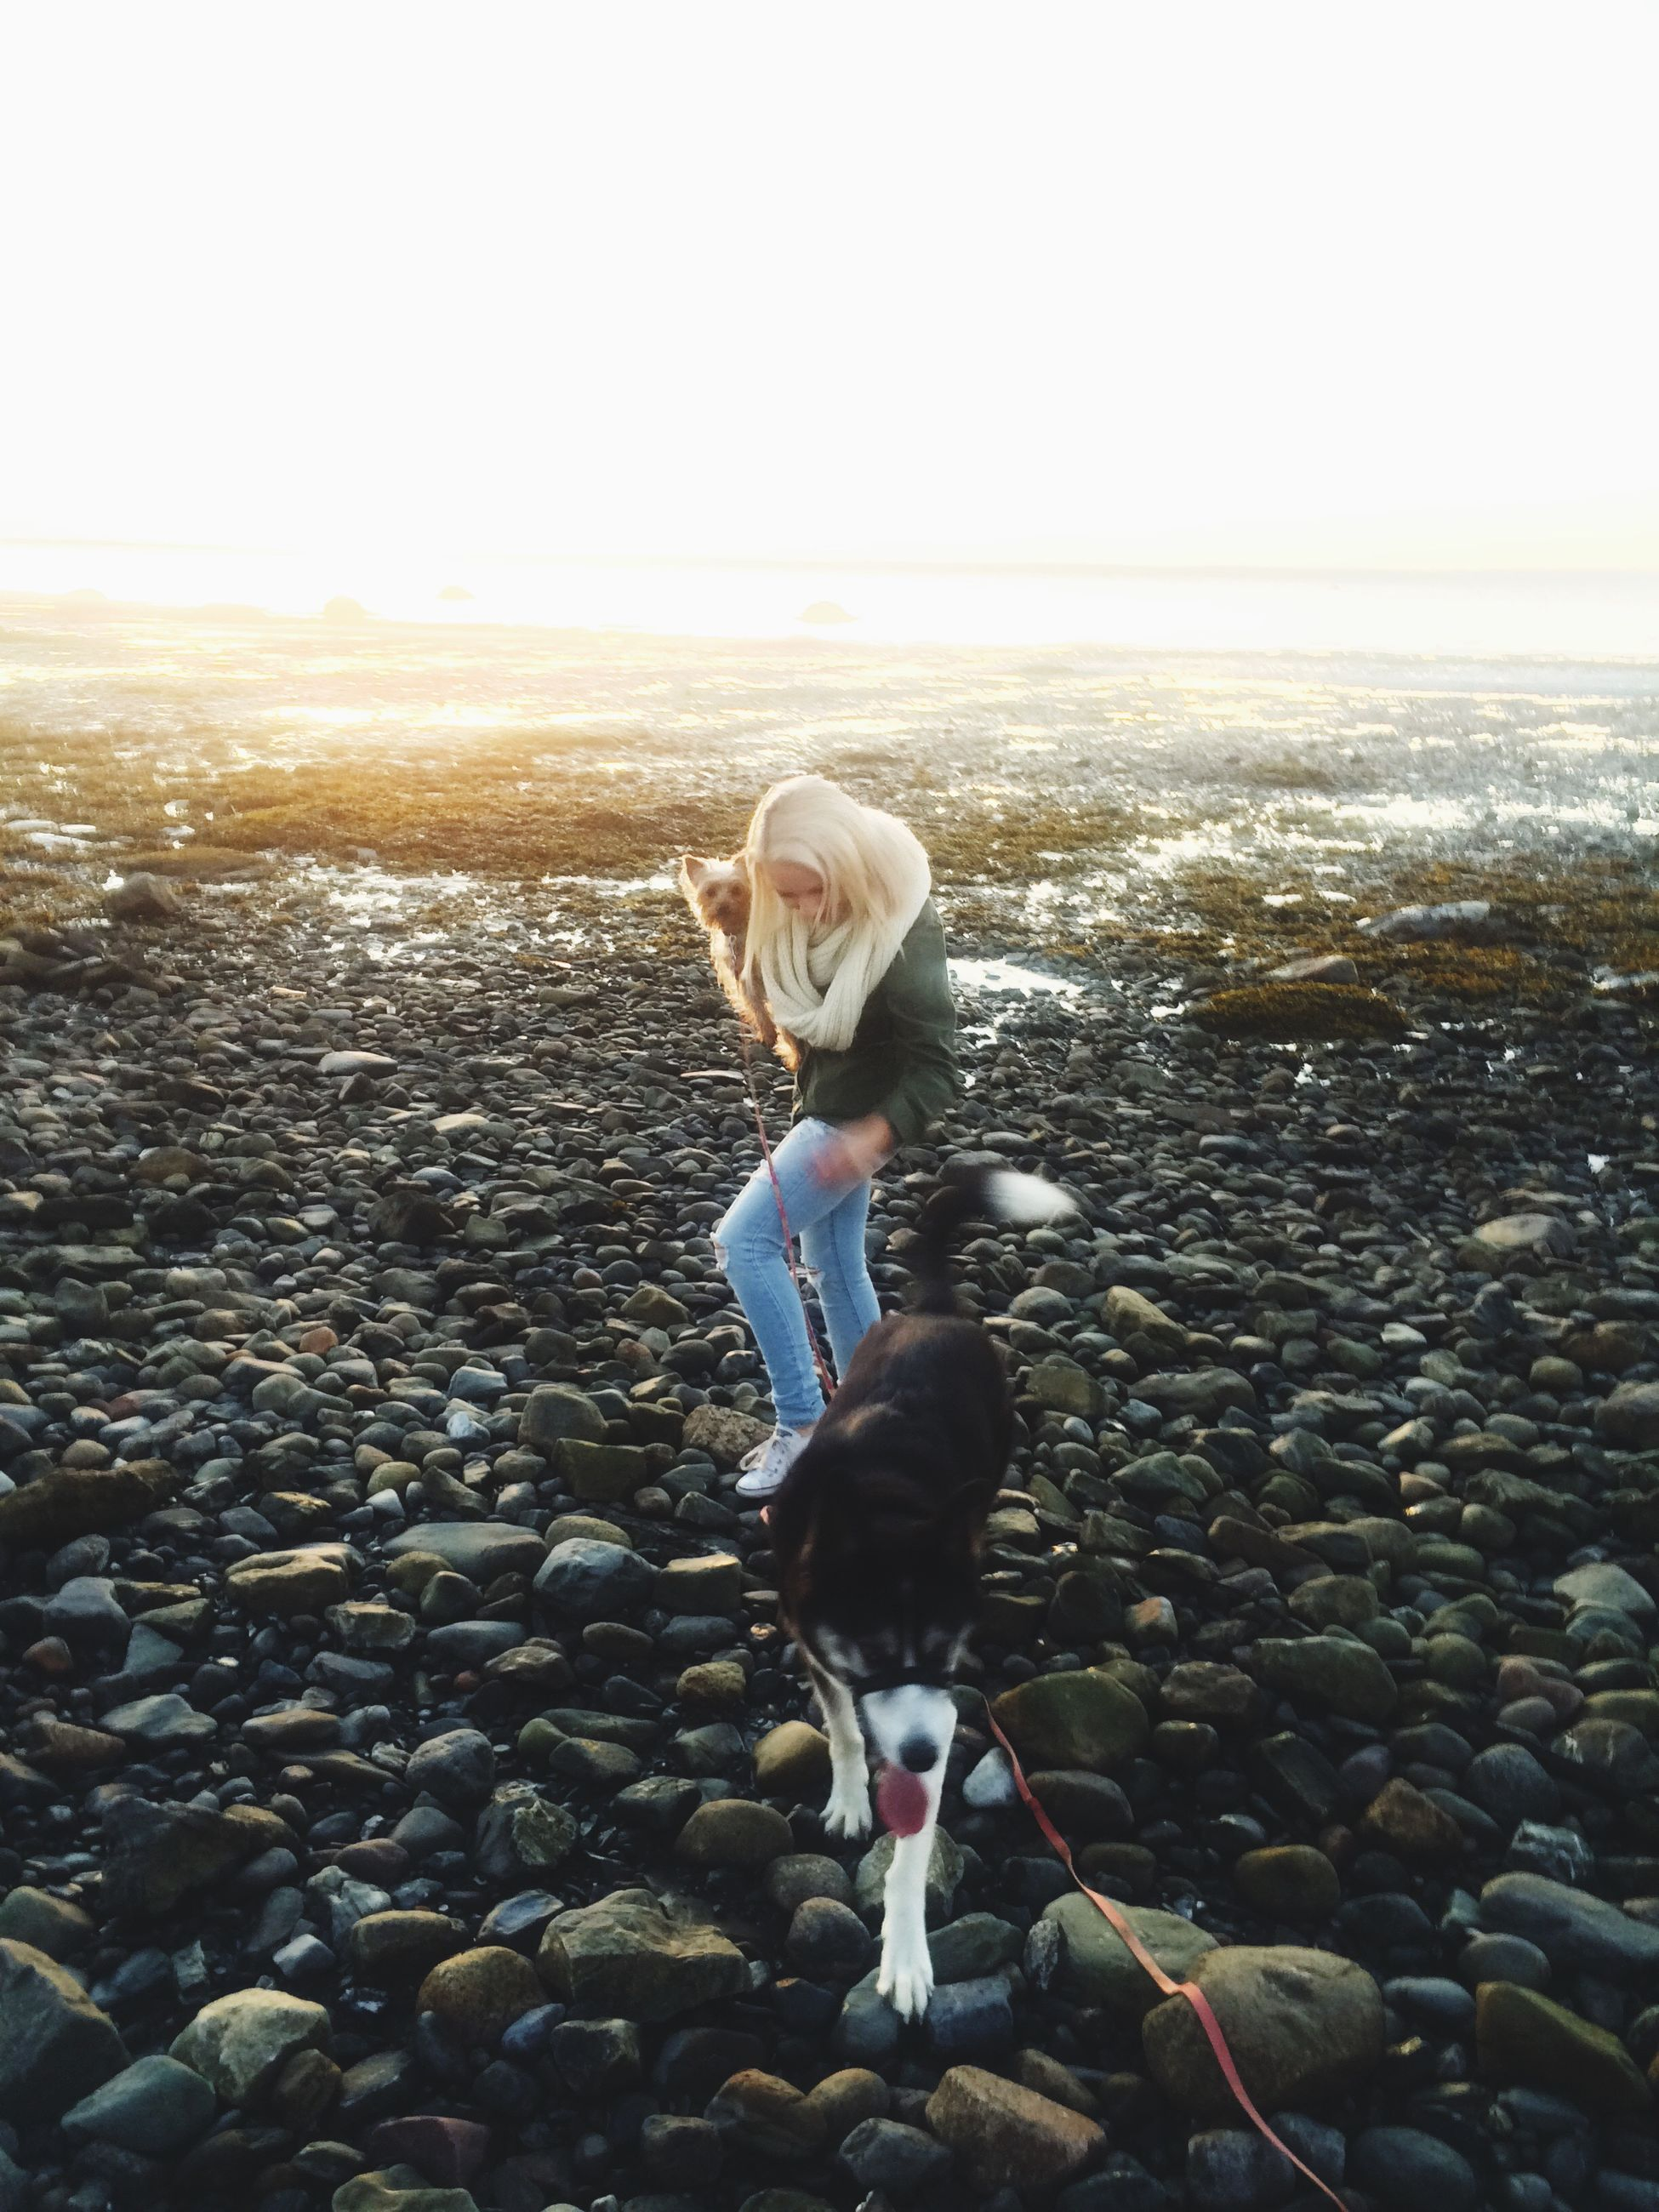 full length, lifestyles, leisure activity, casual clothing, rear view, childhood, boys, standing, elementary age, girls, holding, innocence, sunlight, day, walking, person, hat, outdoors